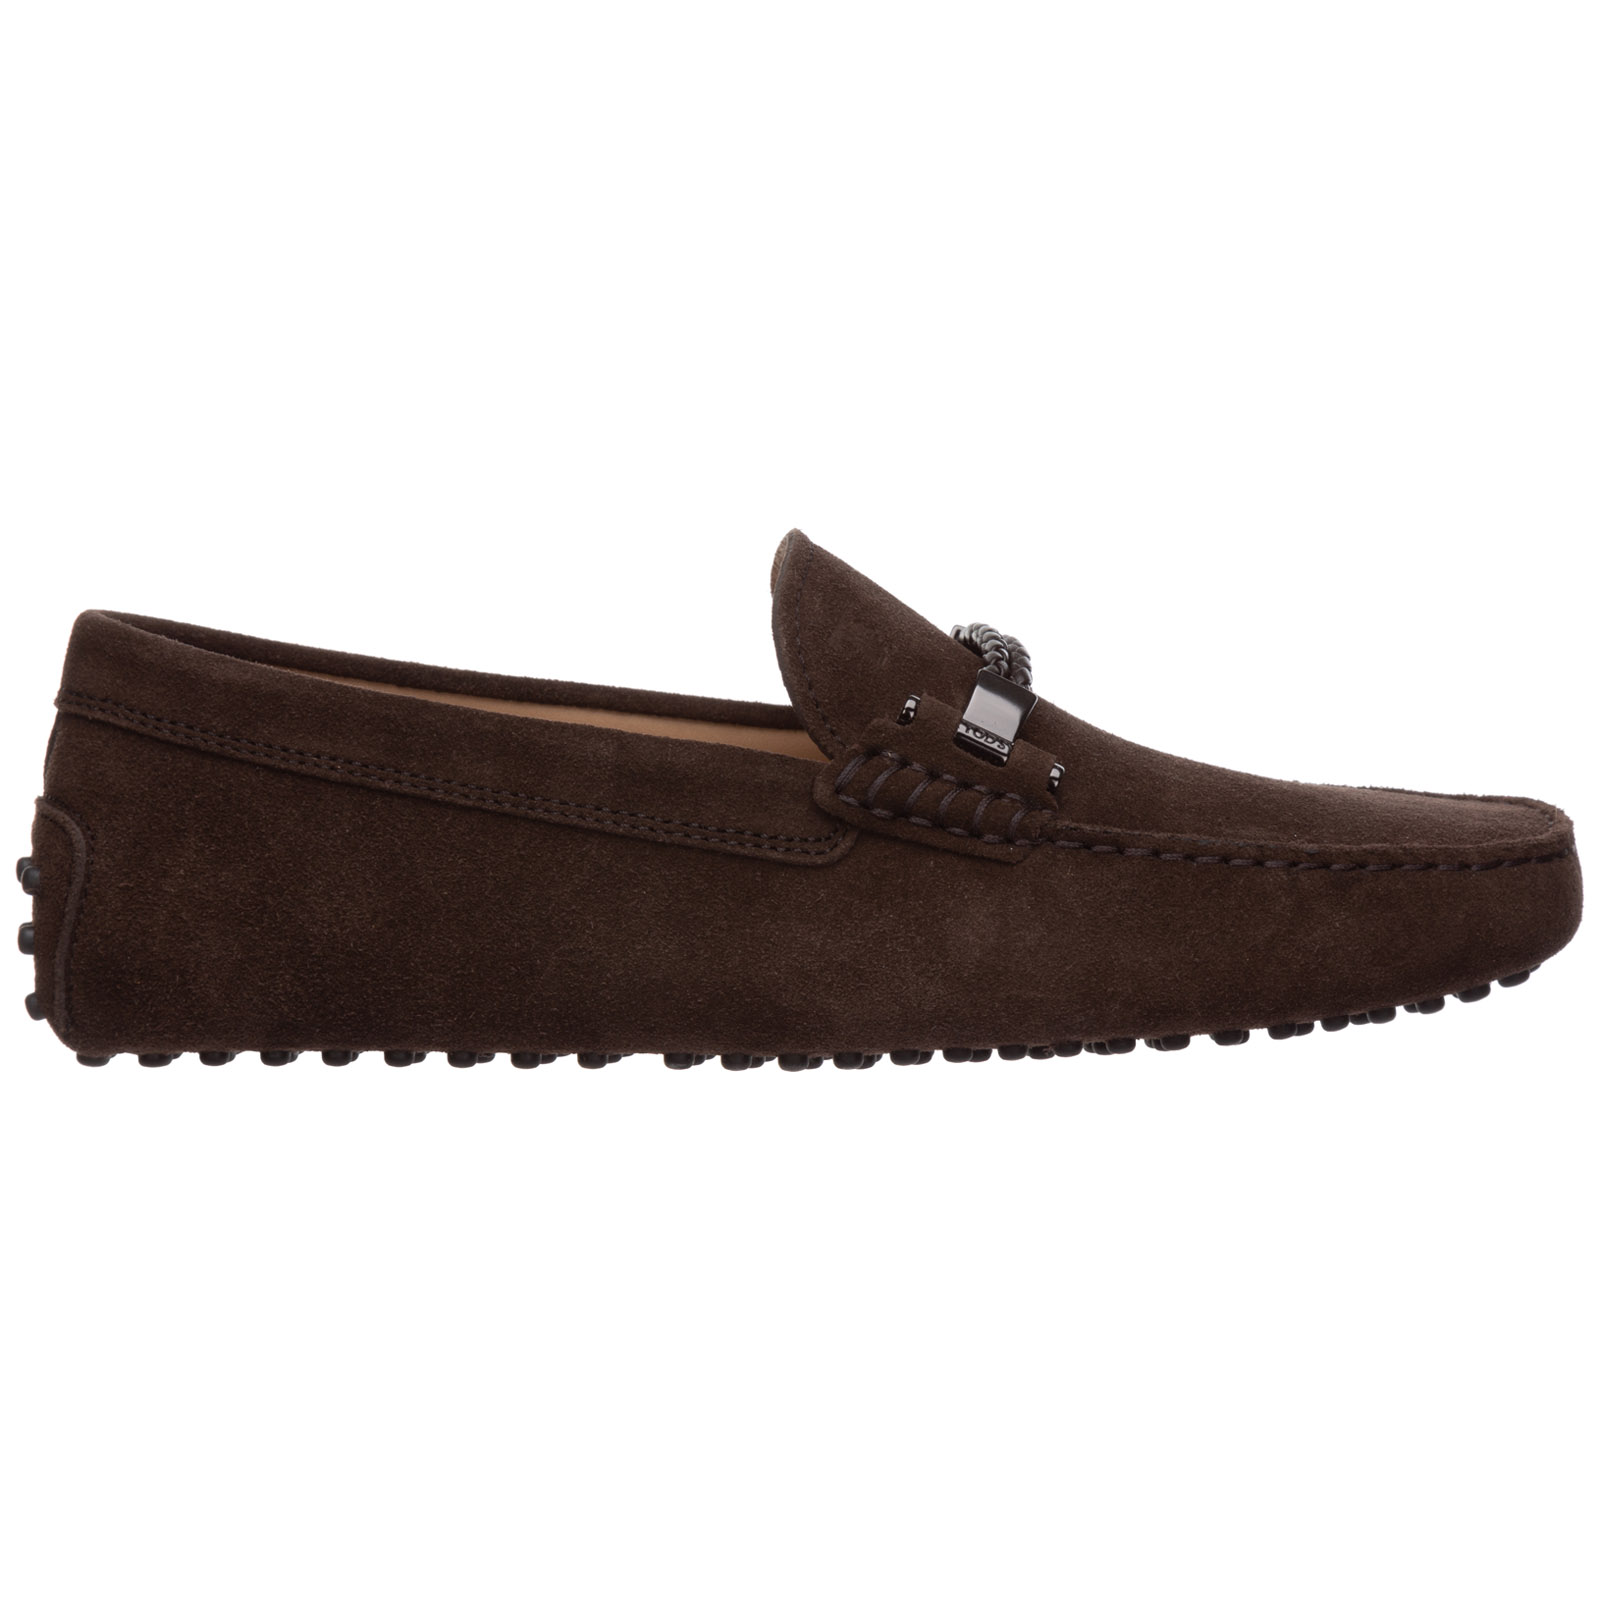 Wildleder mokassins herren slipper gommino